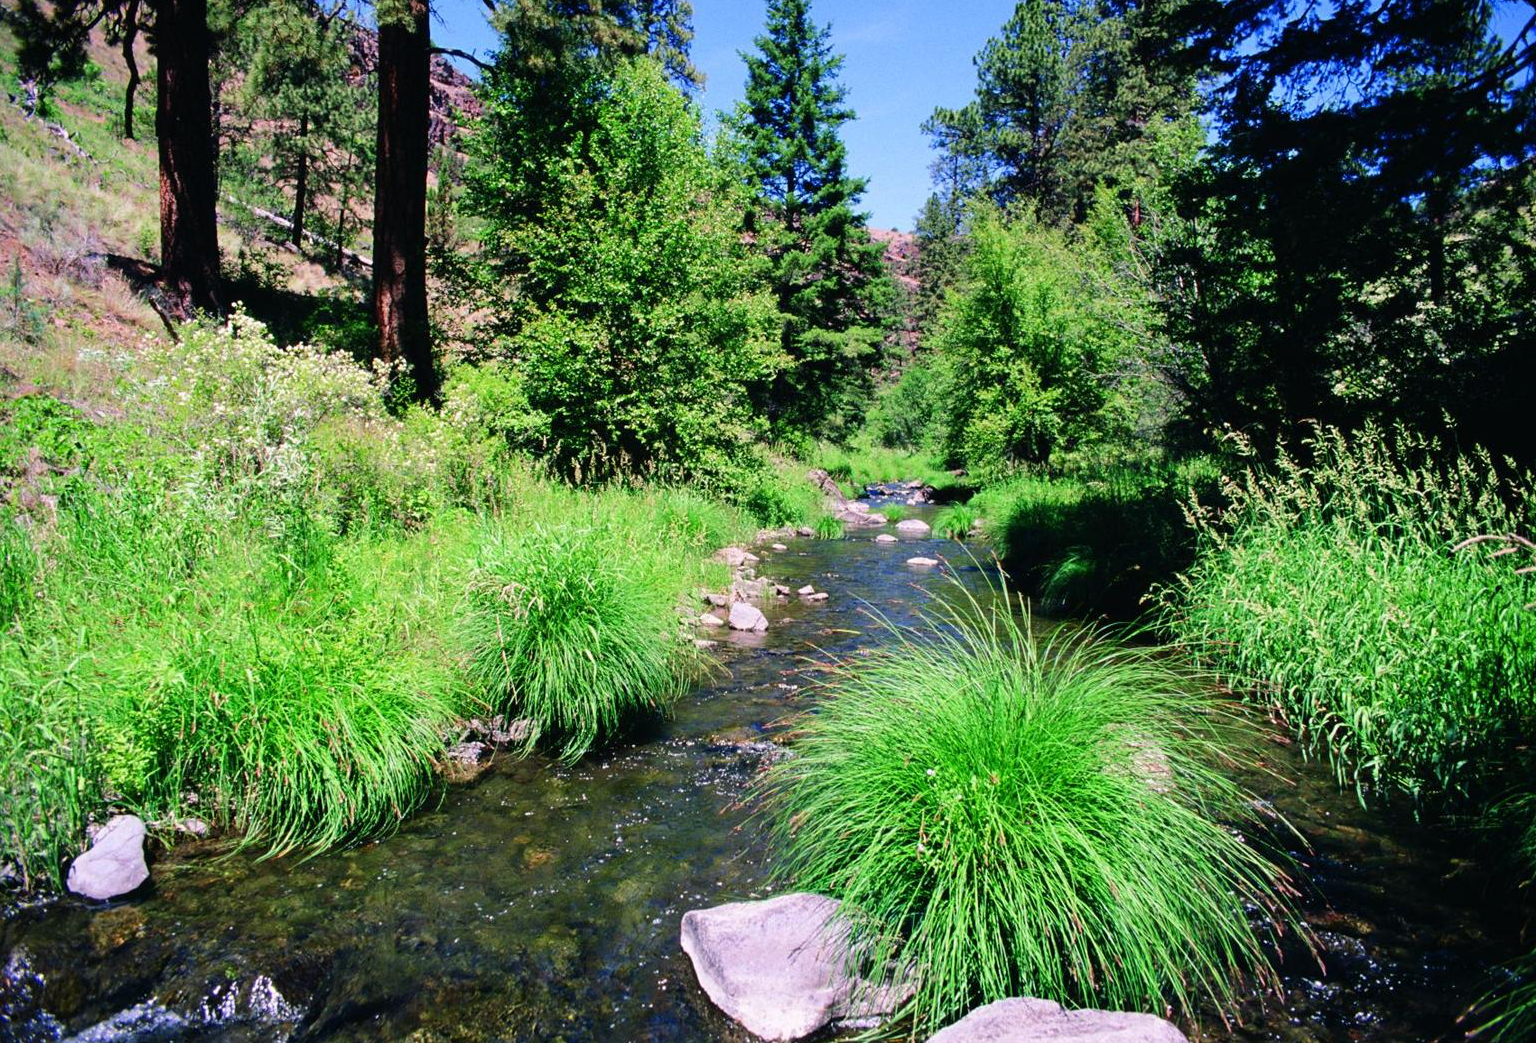 Figure 3.  The proposed Murderers Creek addition to the South Fork John Day Wild and Scenic River, which flows on the Malheur National Forest and through the Murderer's Creek Wildlife Management Area . Source: Sandy Lonsdale (first appeared in   Oregon Wild: Endangered Forest Wilderness  ).